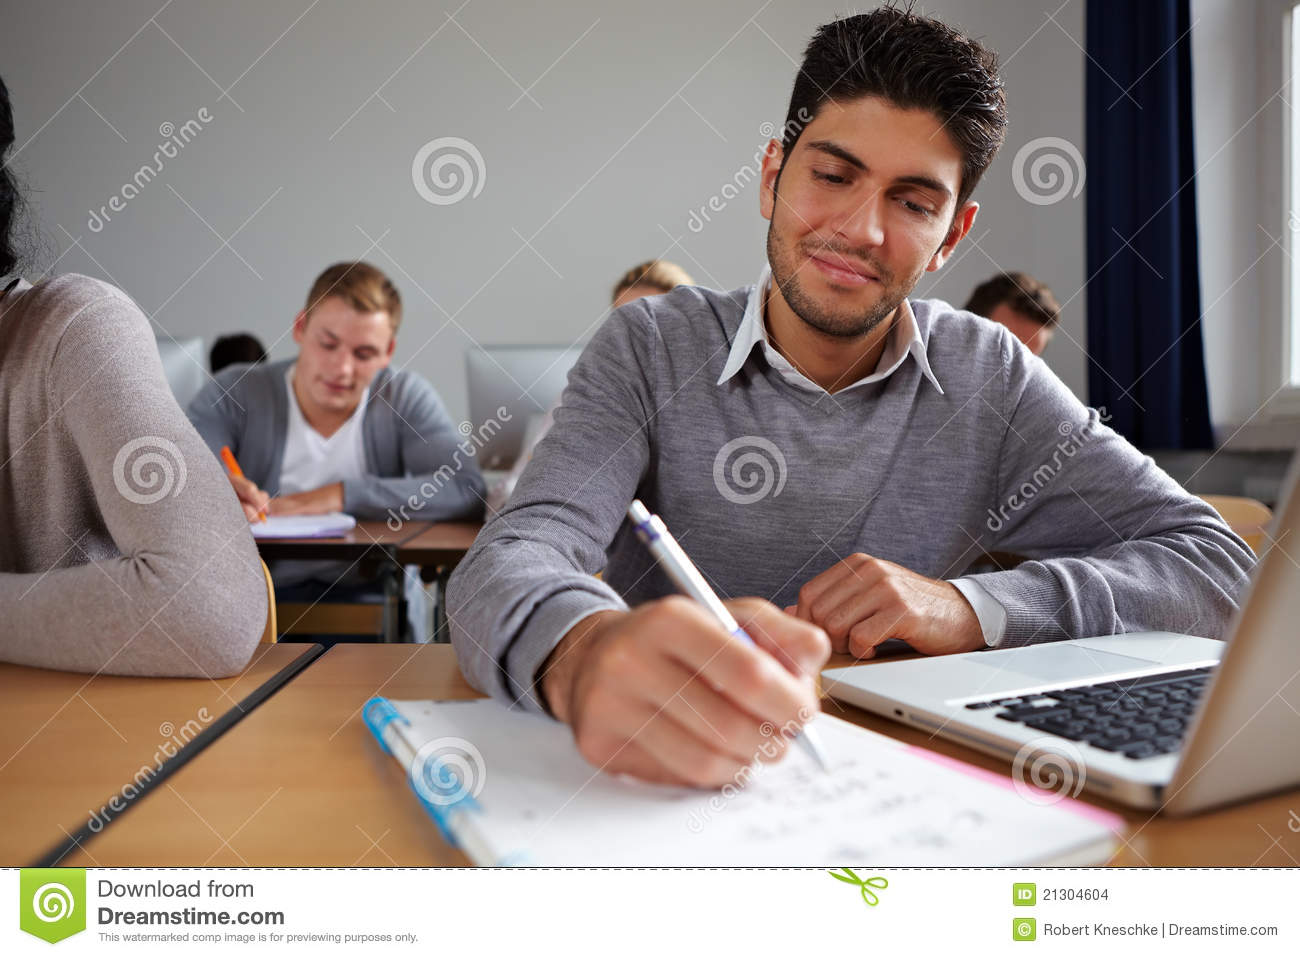 Student Taking Notes In Class Stock Images - Image: 21304604